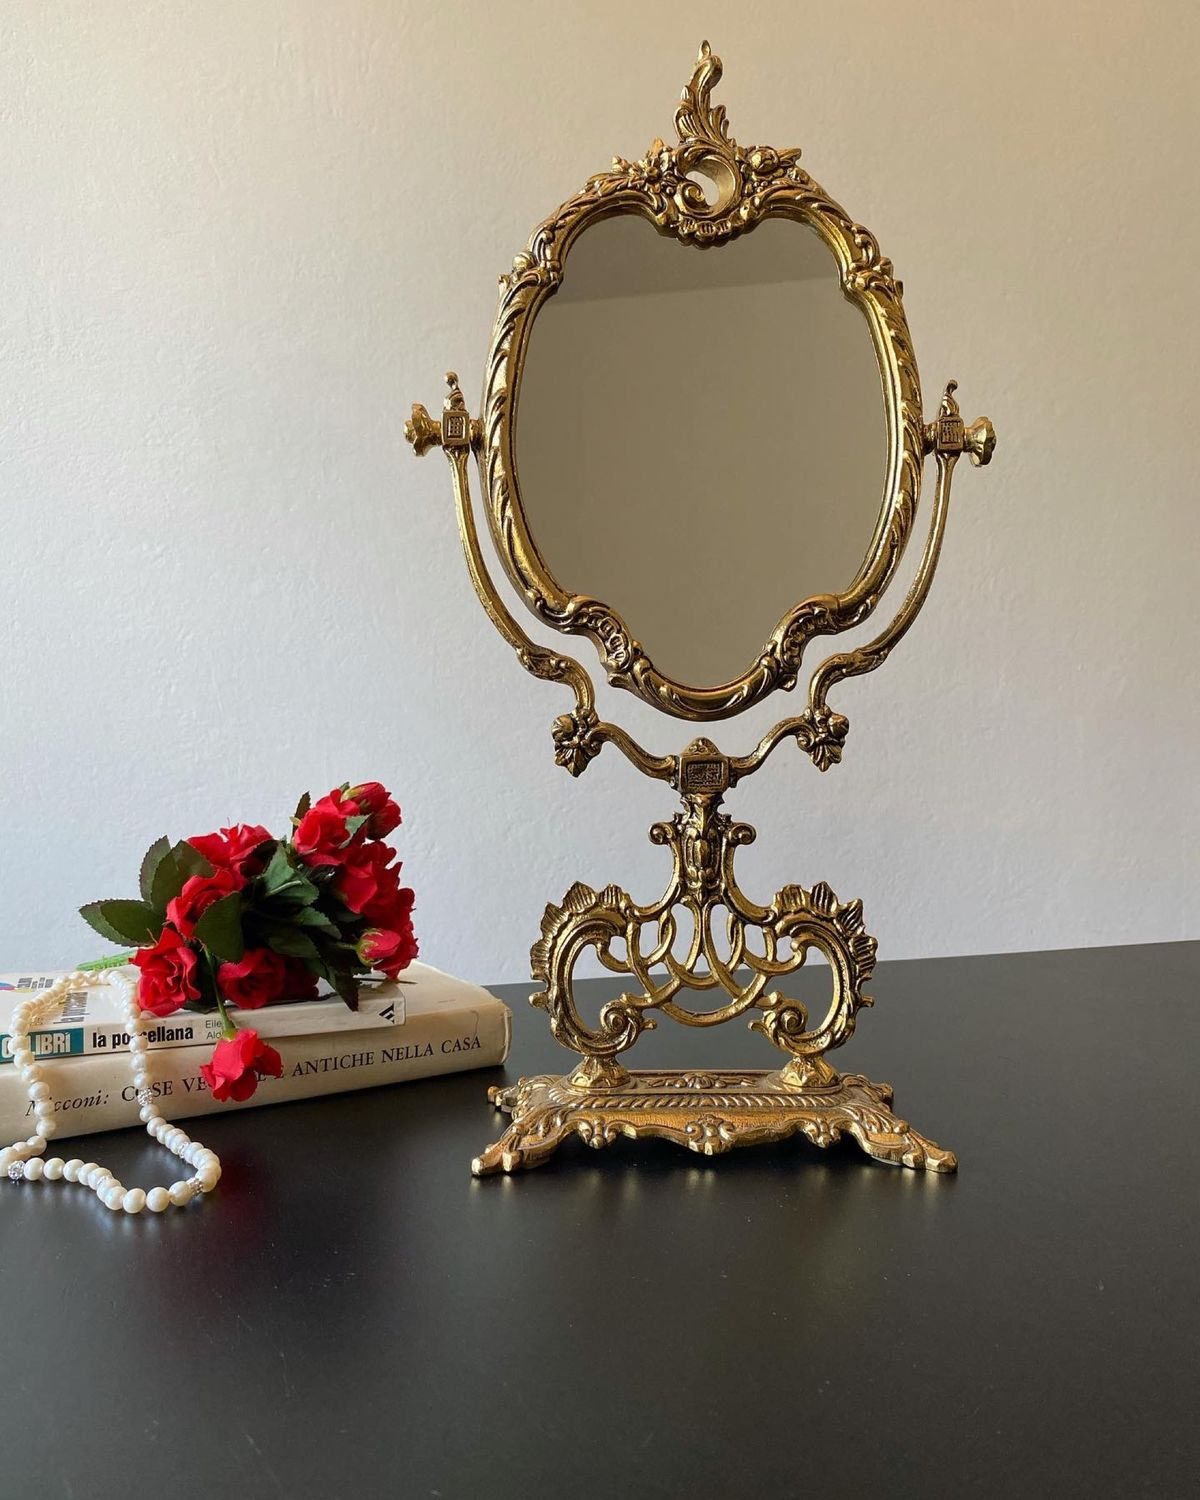 Antique mirror. Italy, Vintage interior, Pisa,  Фото №1